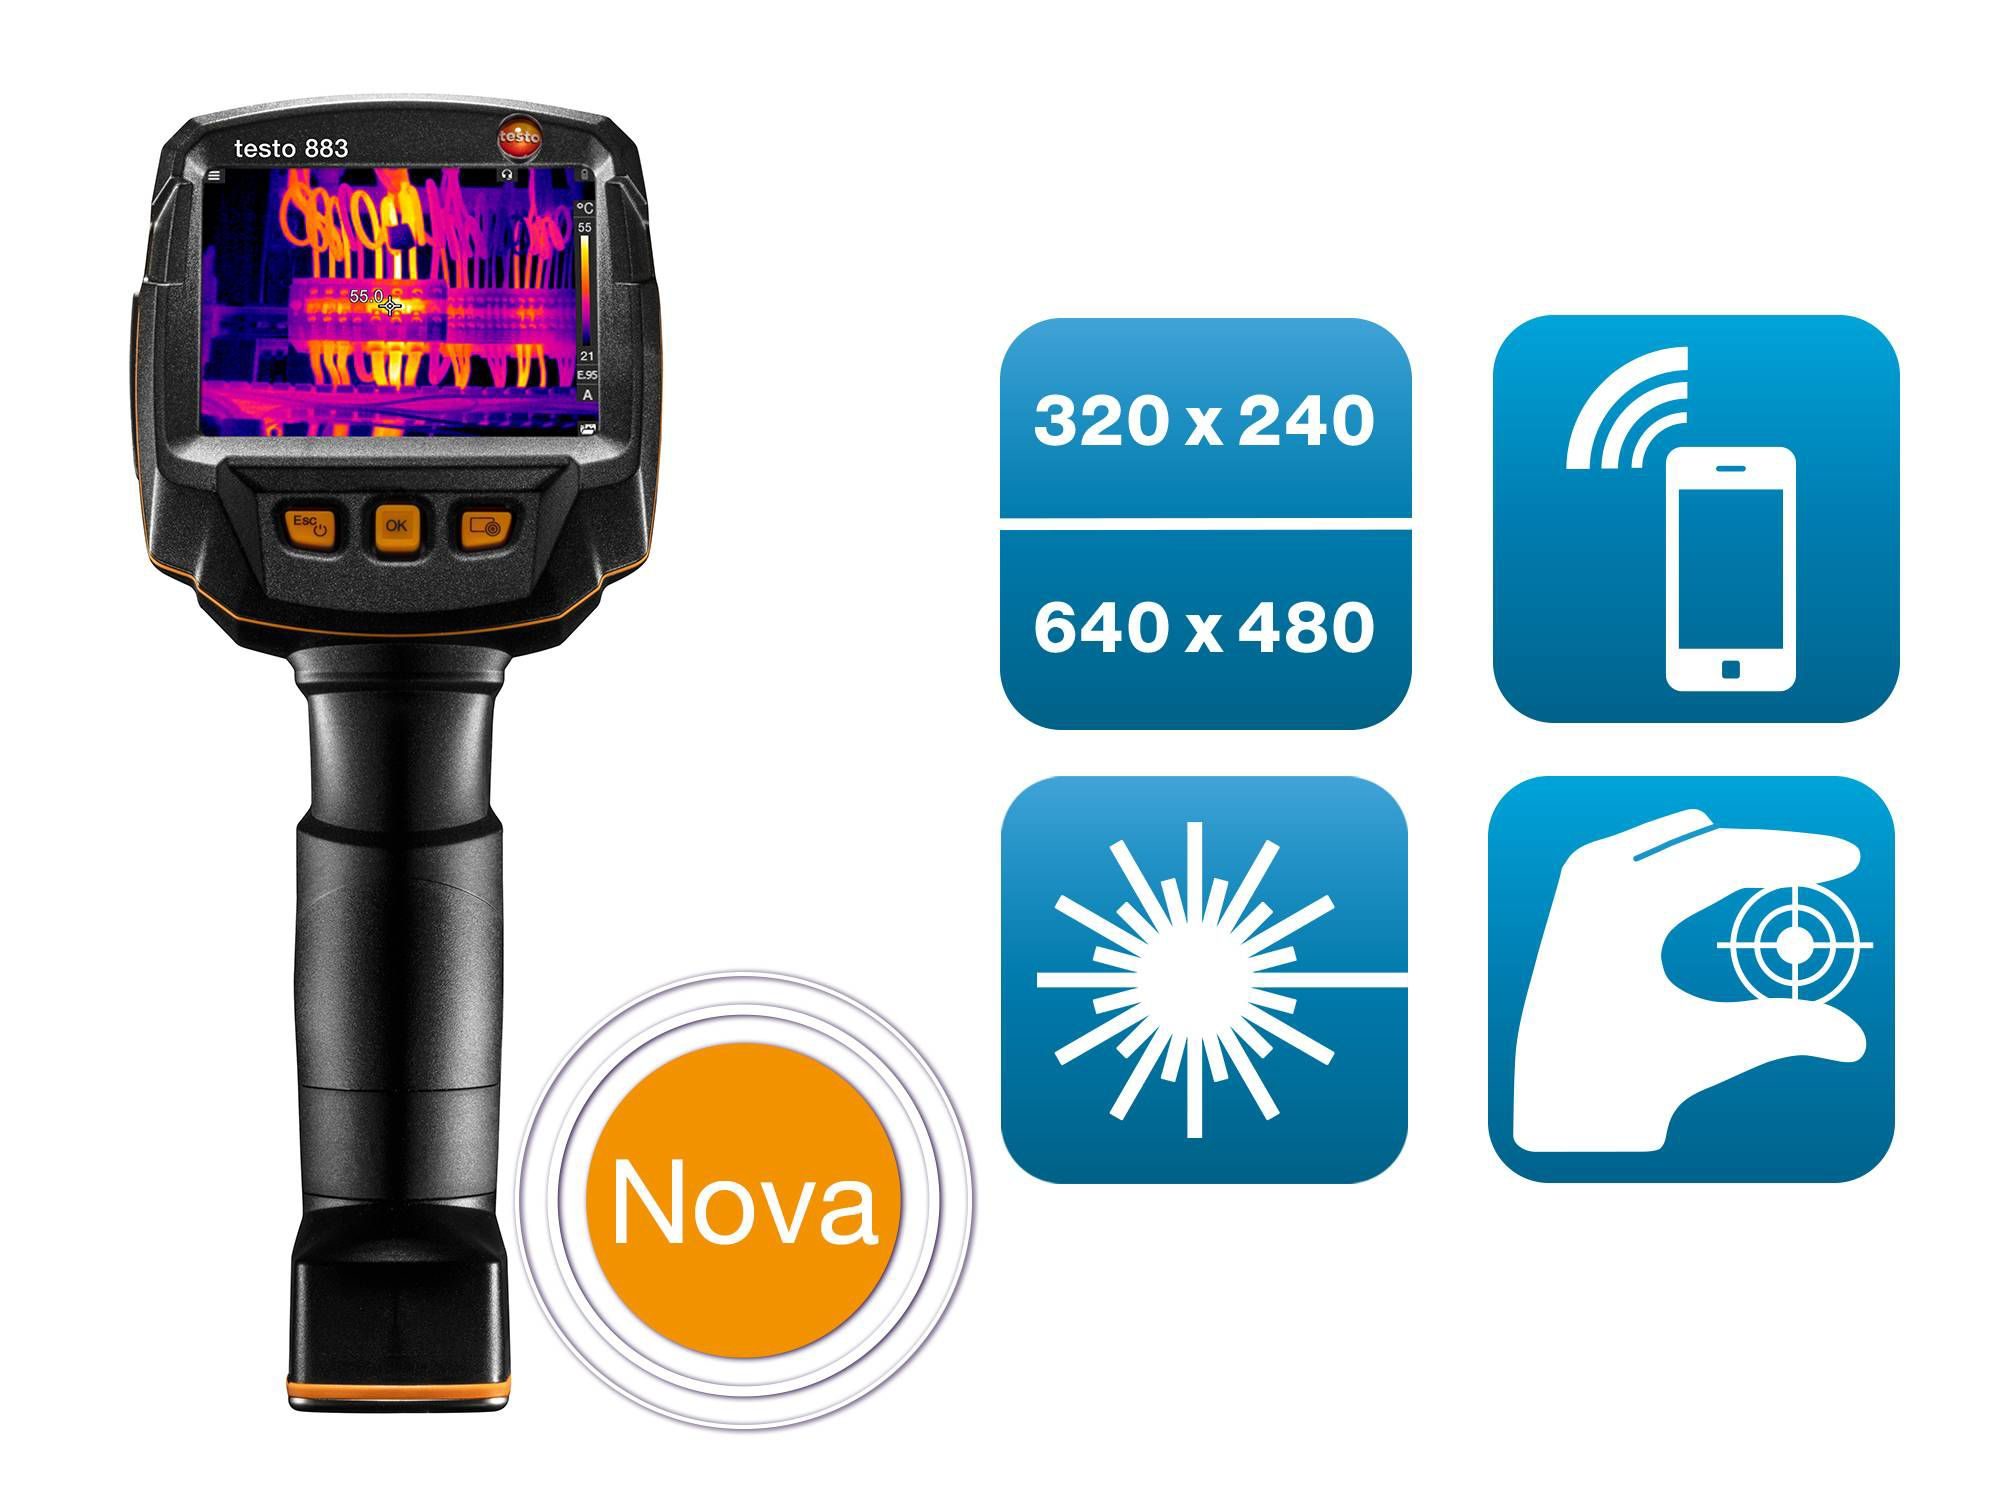 testo 883 thermal imager